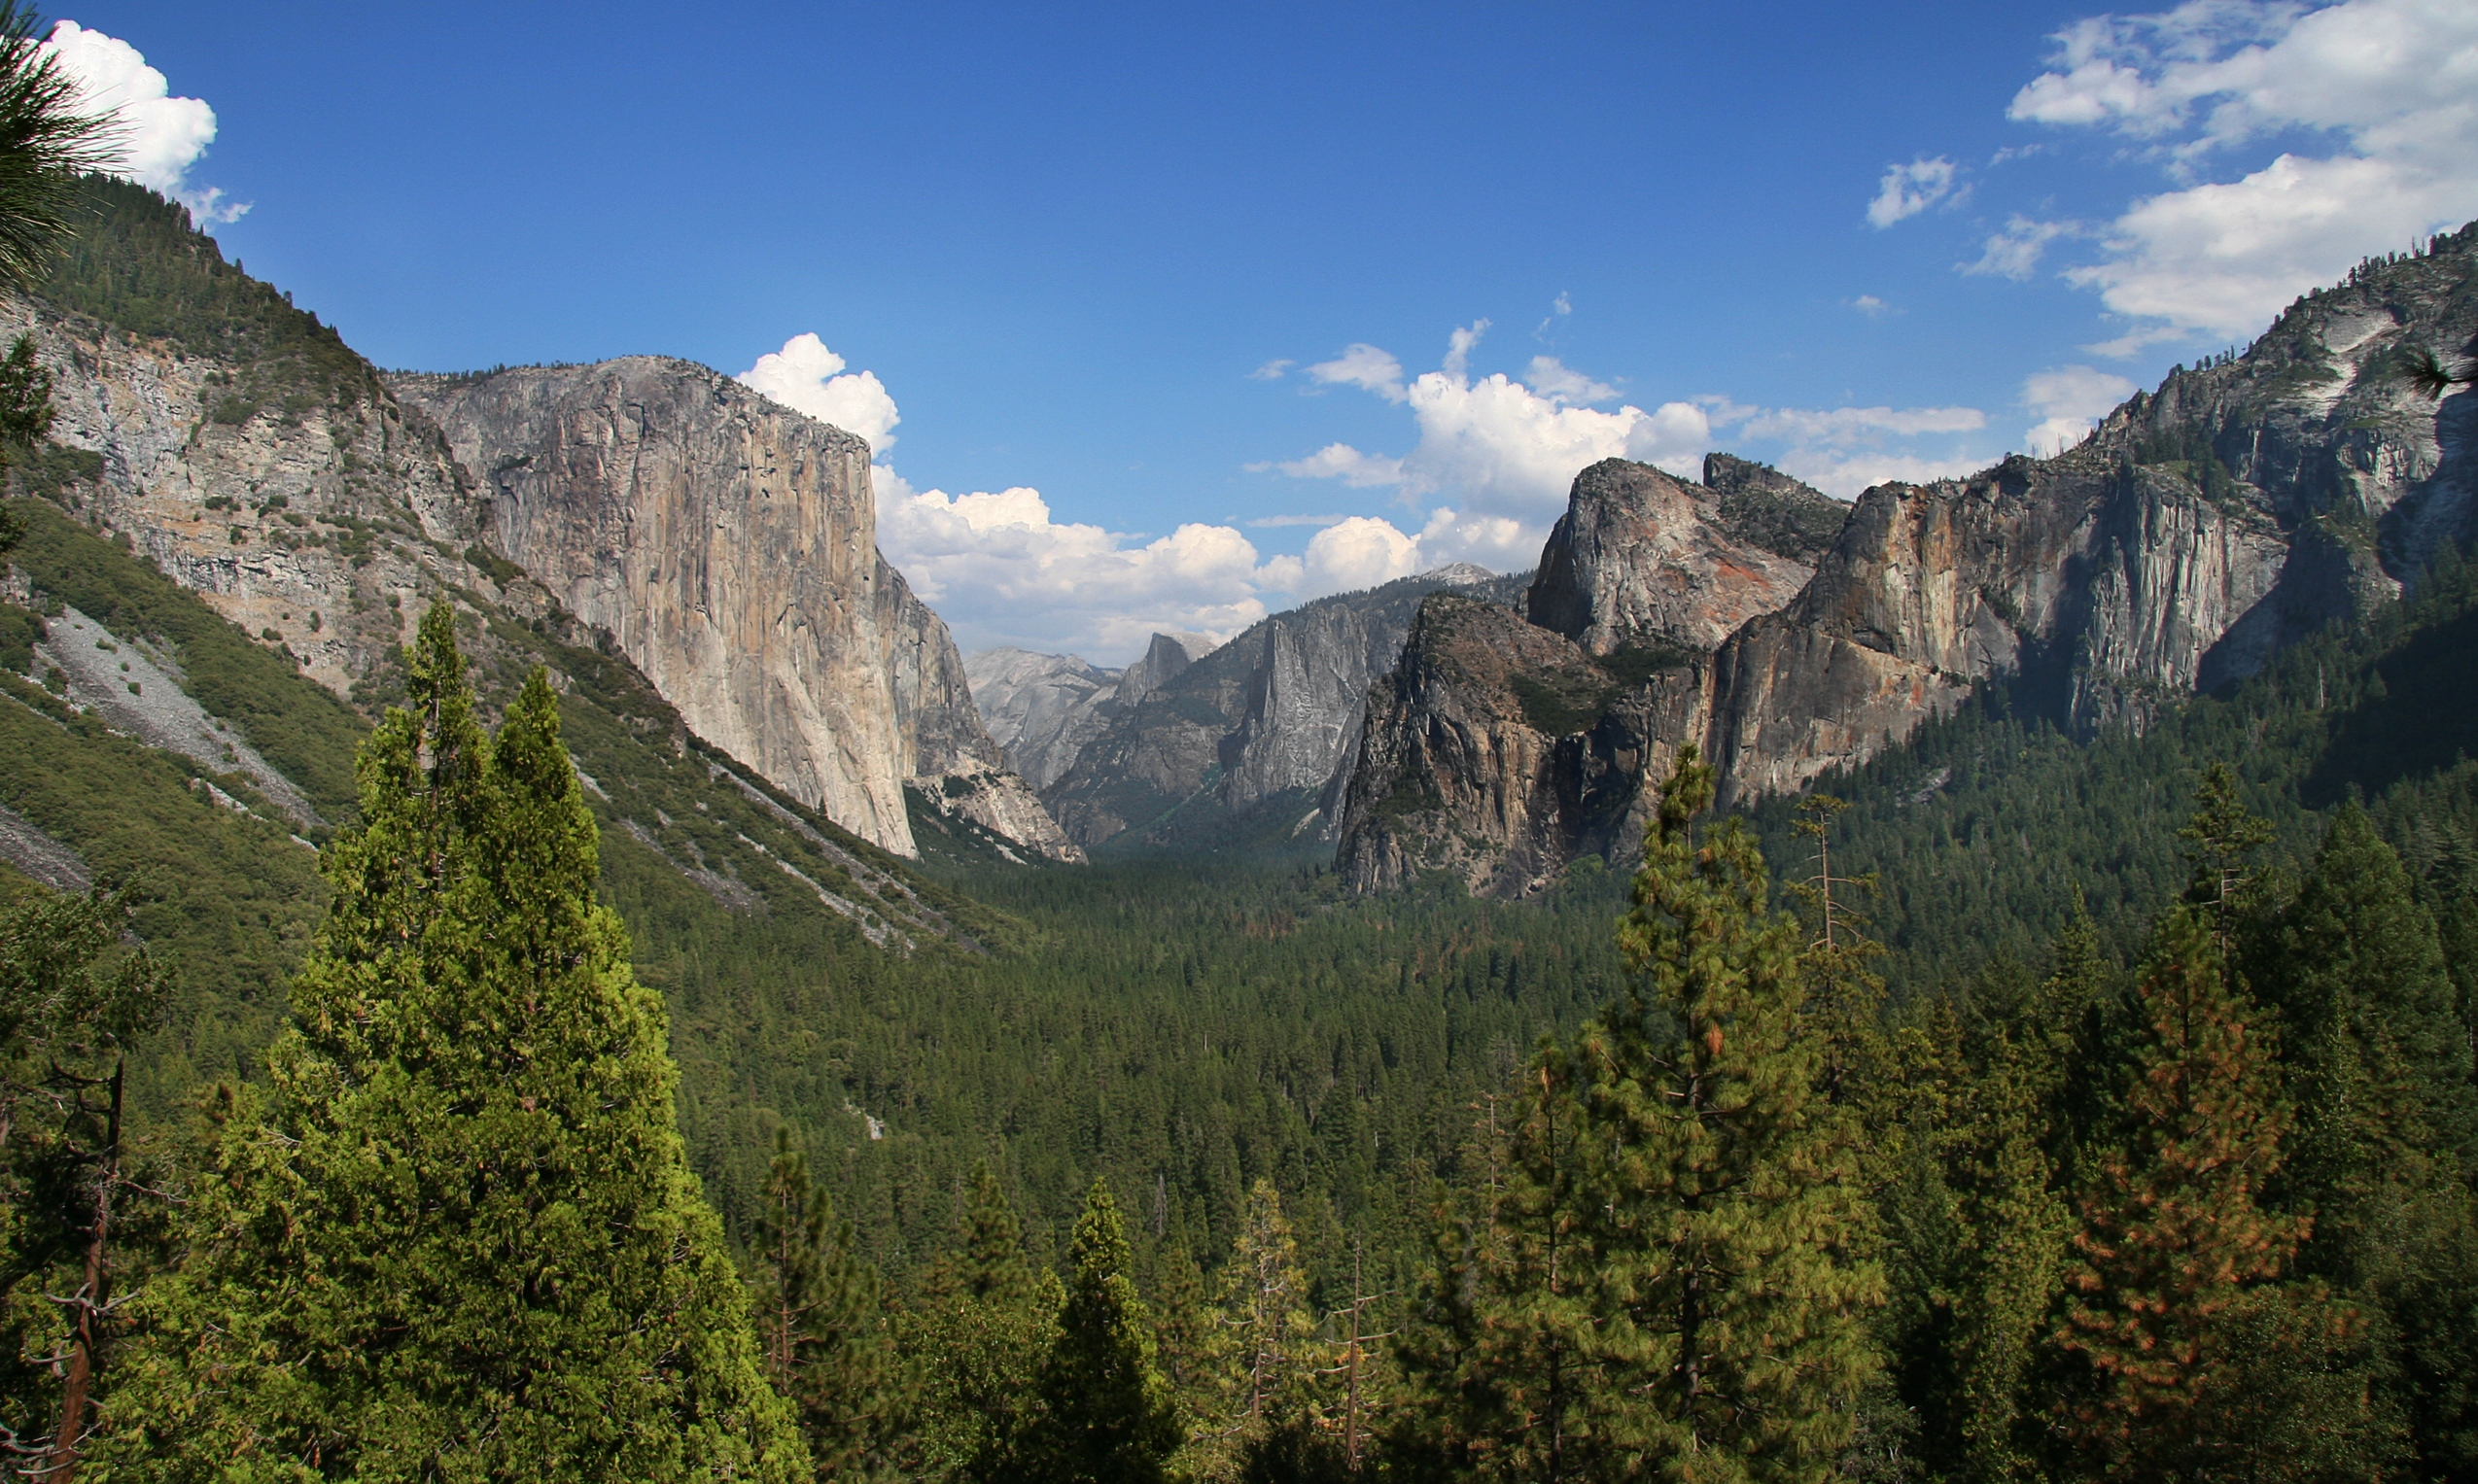 yosemite national park black dating site Perfect location in yosemite national park: the majestic yosemite hotel - see 2,801 traveller reviews, 1,695 photos, and cheap deals for the majestic yosemite hotel.